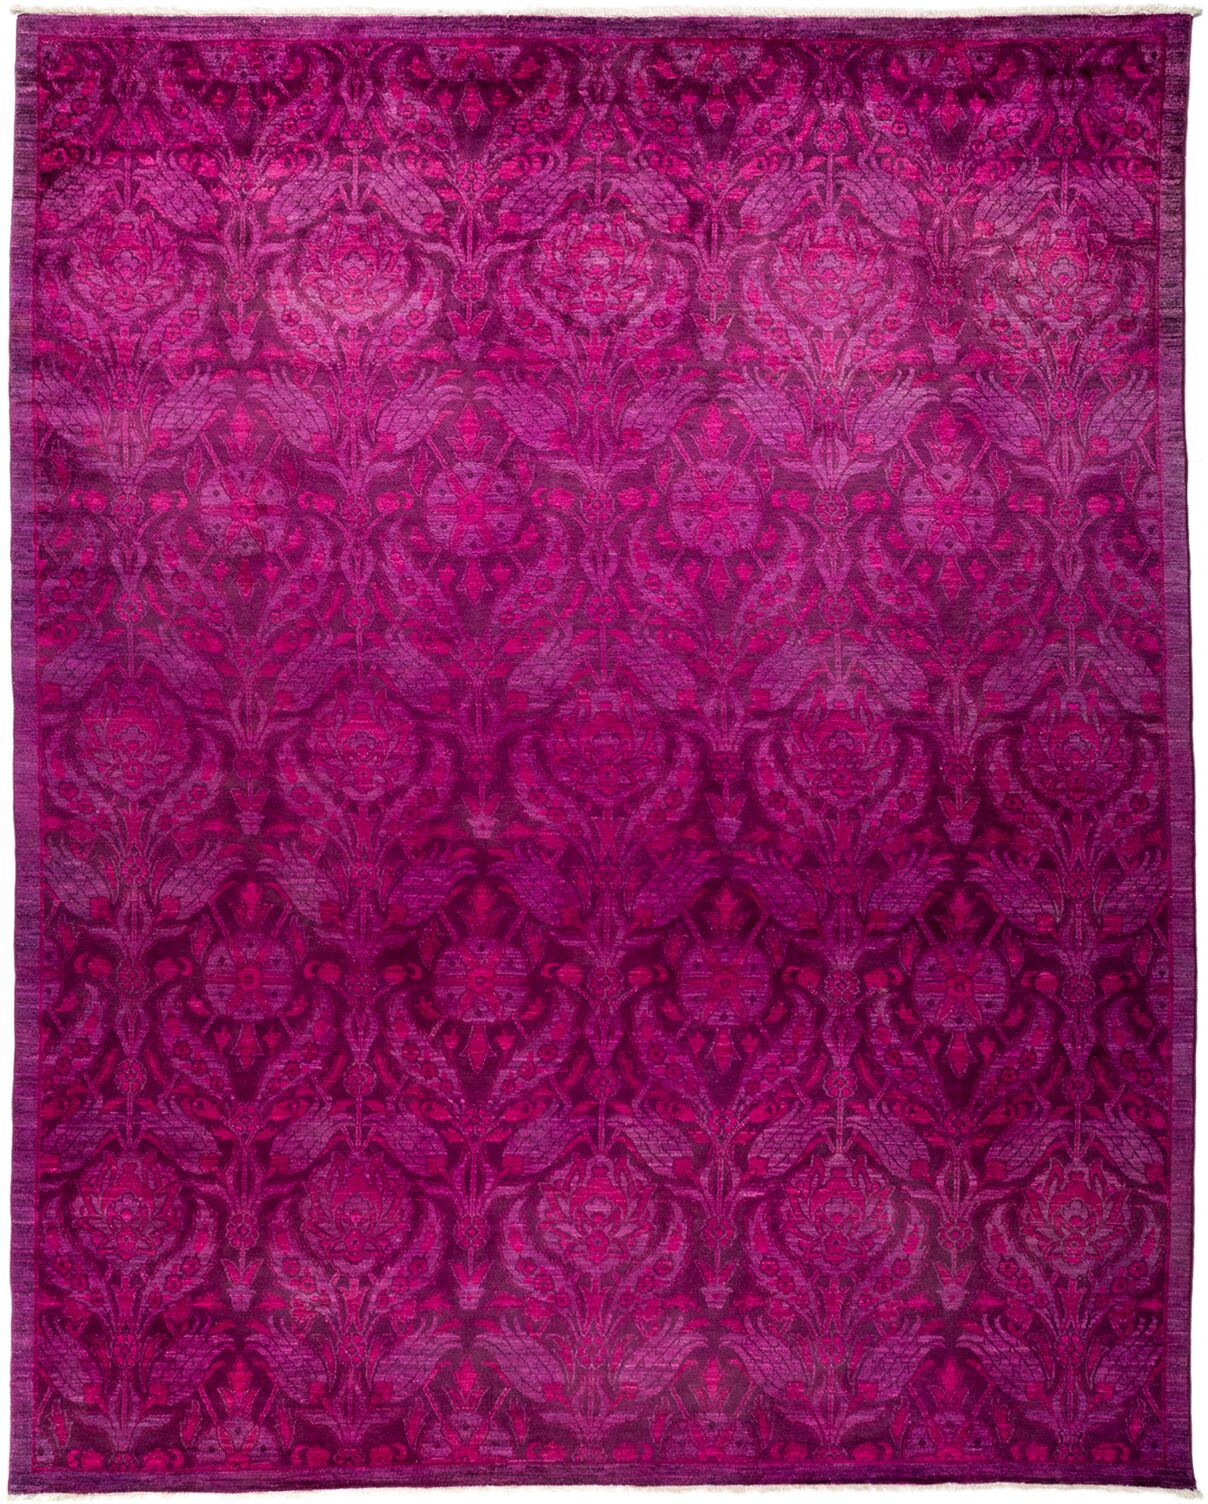 One-of-a-Kind Vibrance Hand-Knotted Purple / Pink Area Rug